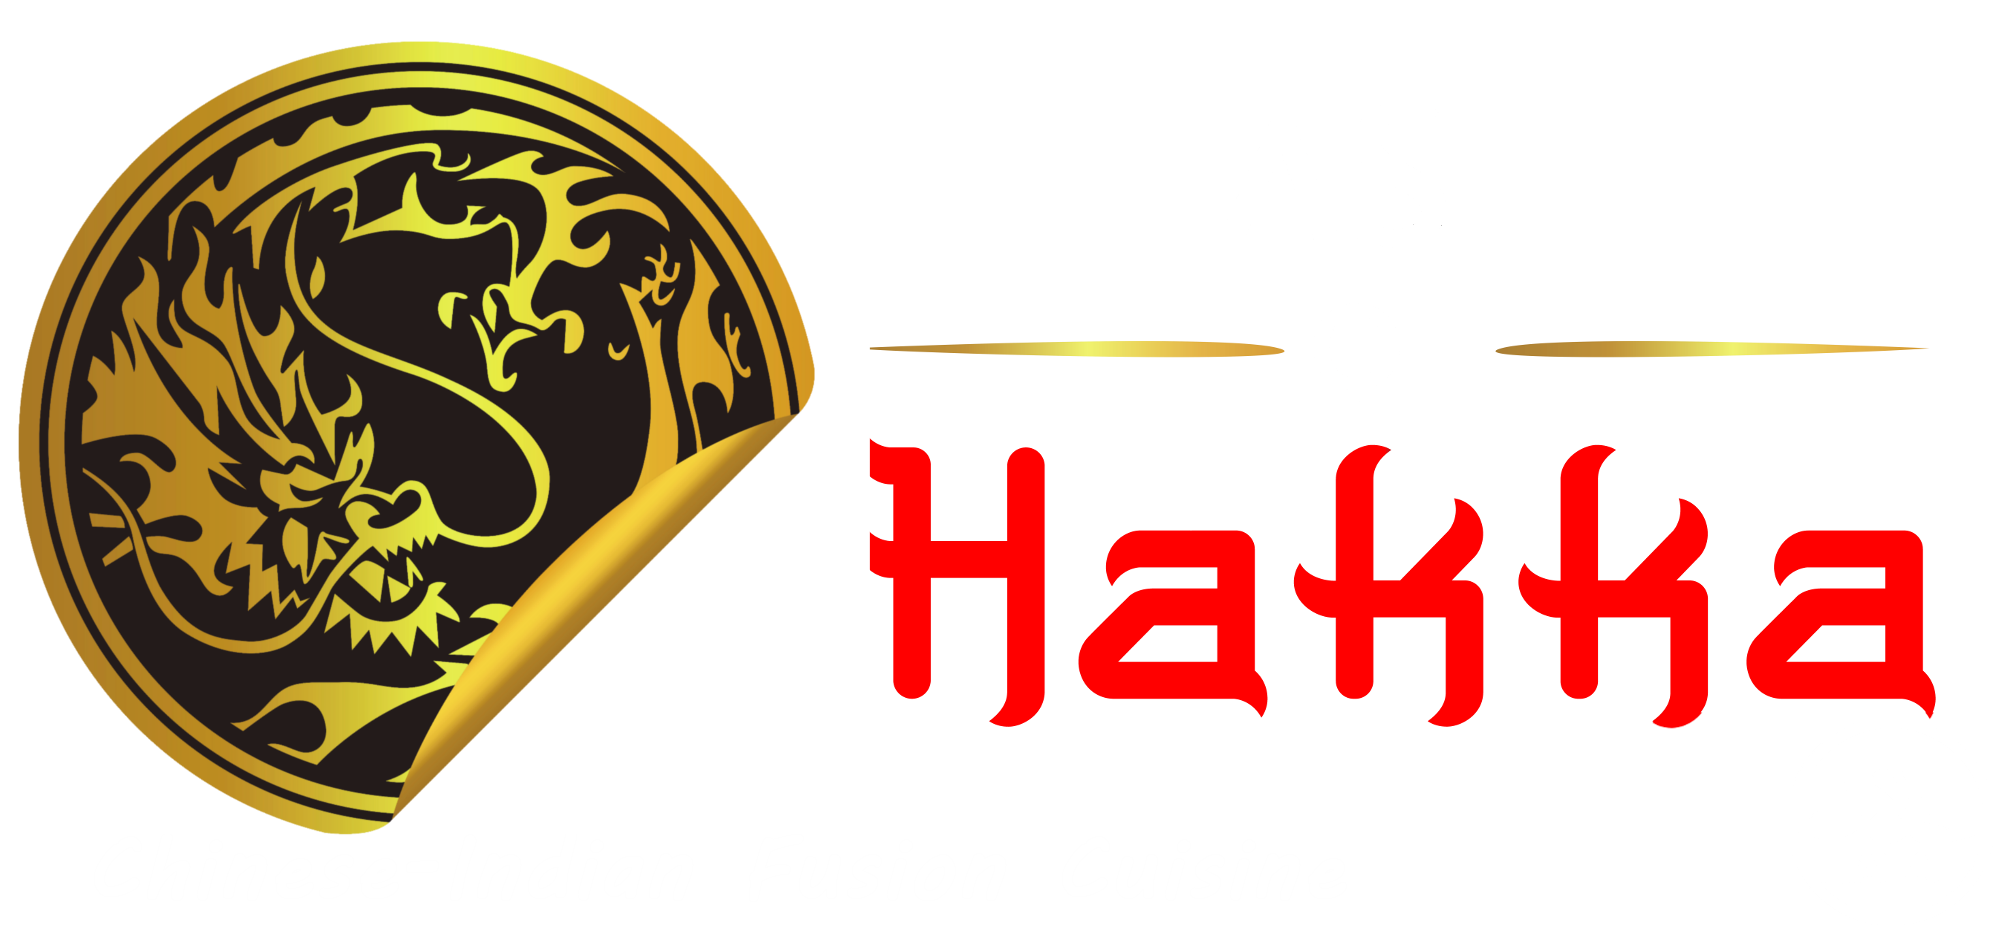 taste of hakka  vaughan woodbridge chineseindian hakka food